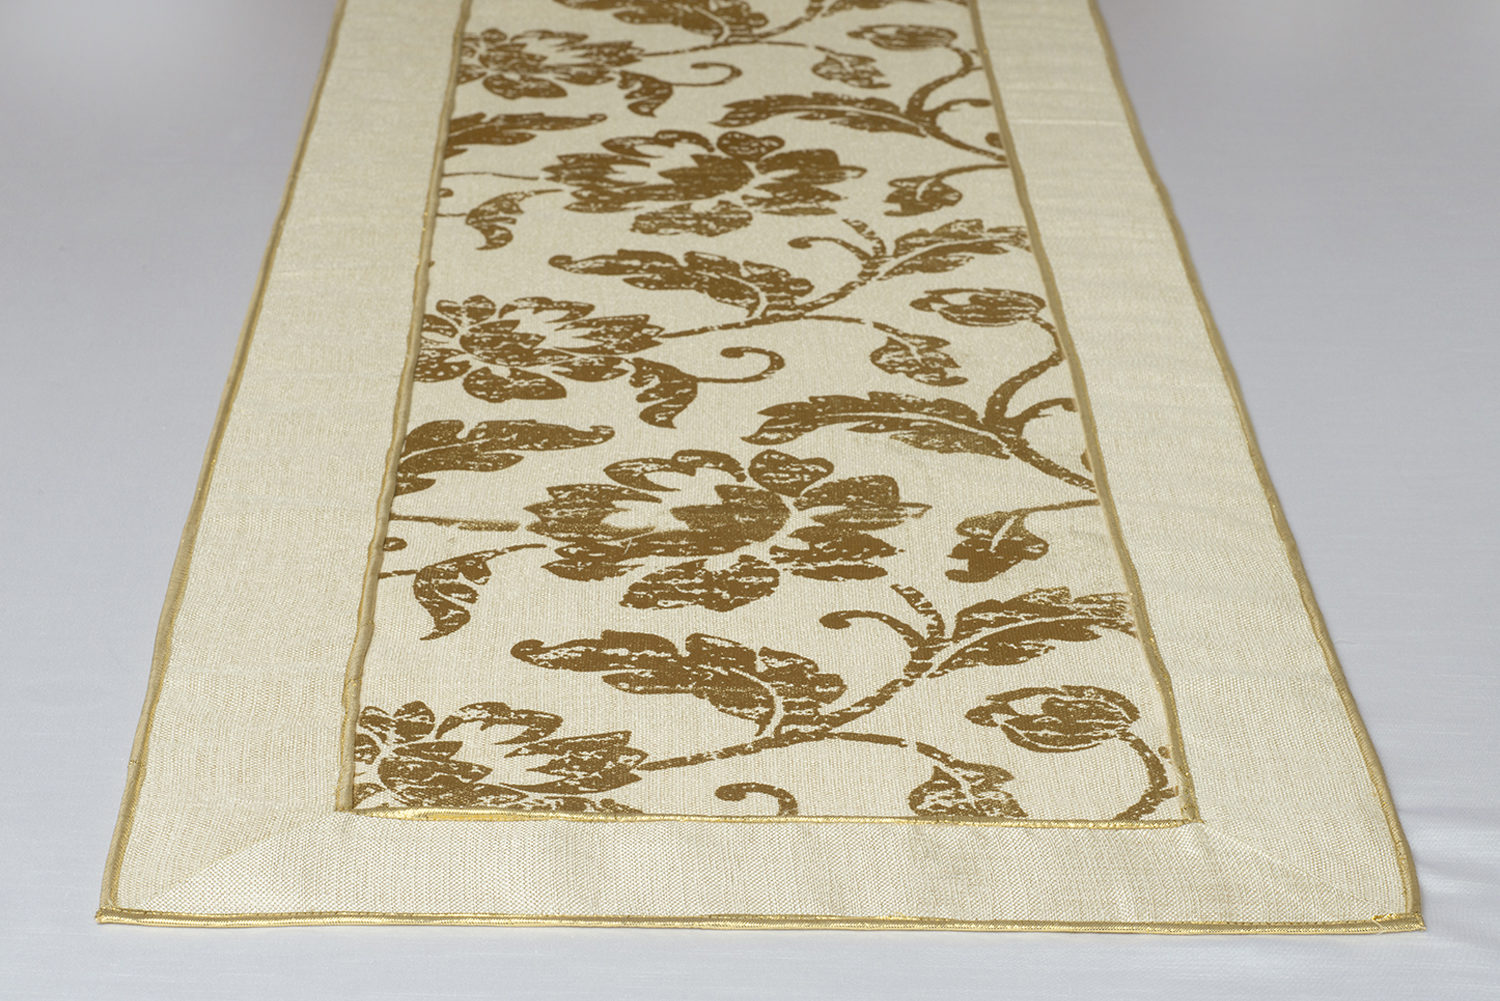 Cream Color Shimmer Canvas With Foil Fl Print Gold Metallic Cording Banquet Table Runner